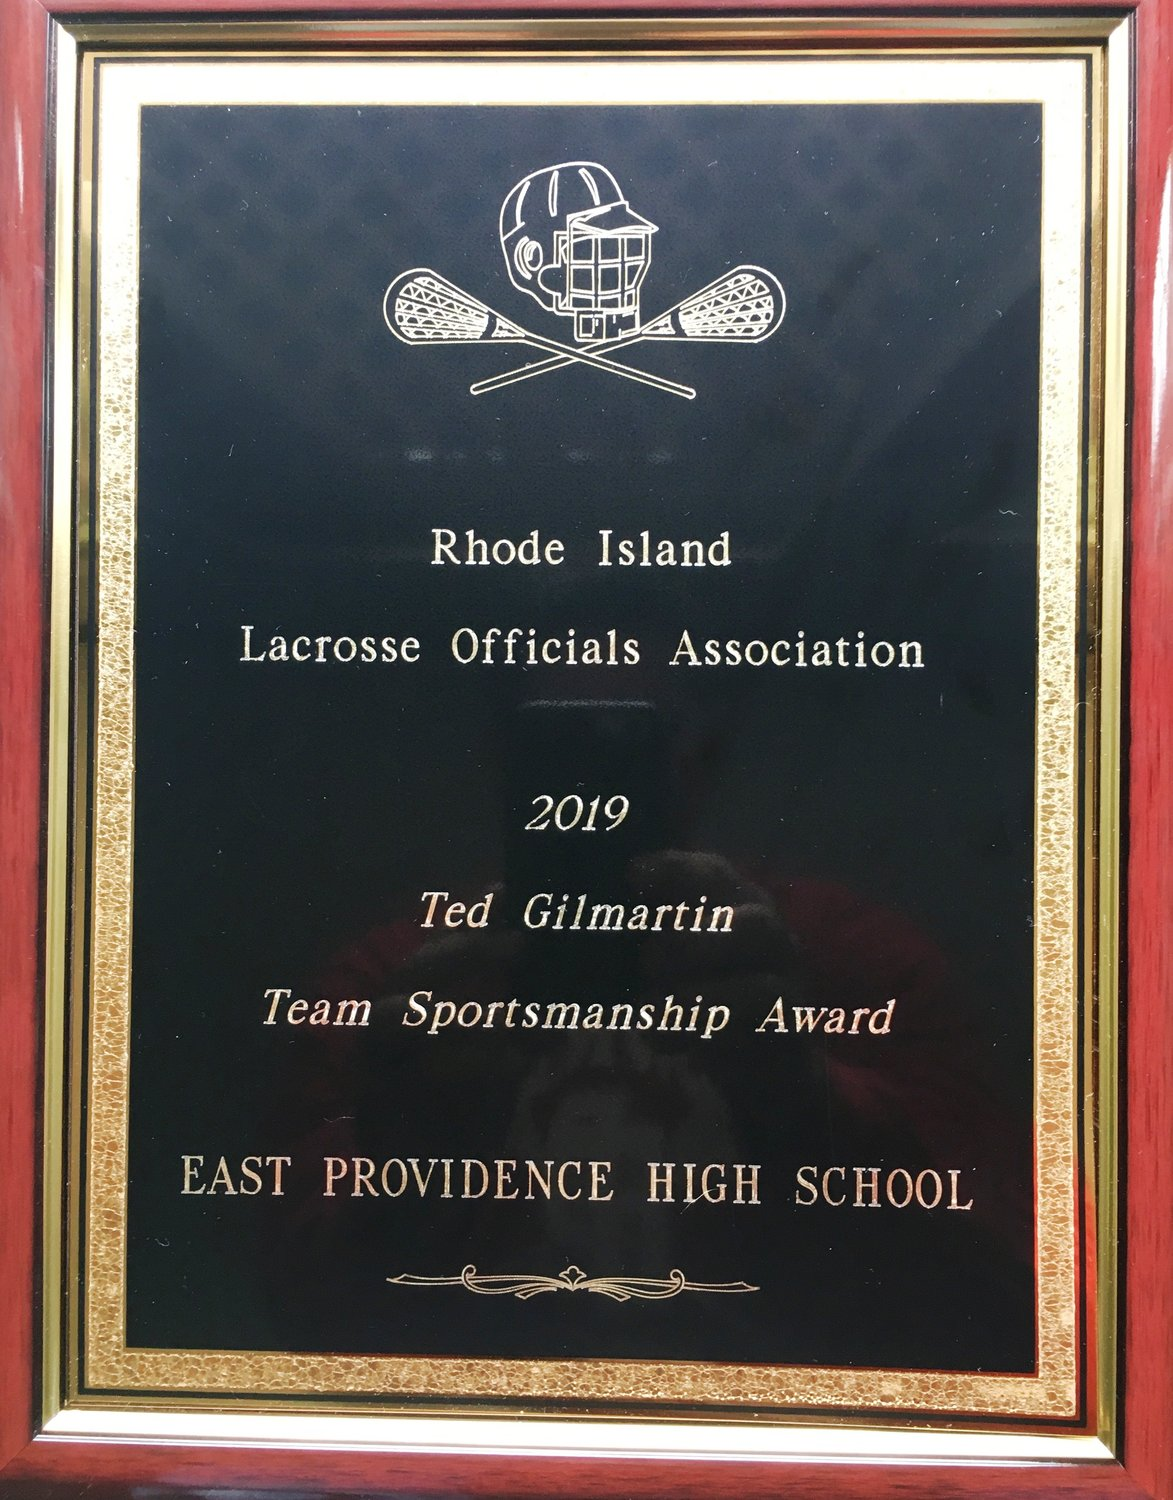 2019 RI Team Sportsmanship Award Lacrosse